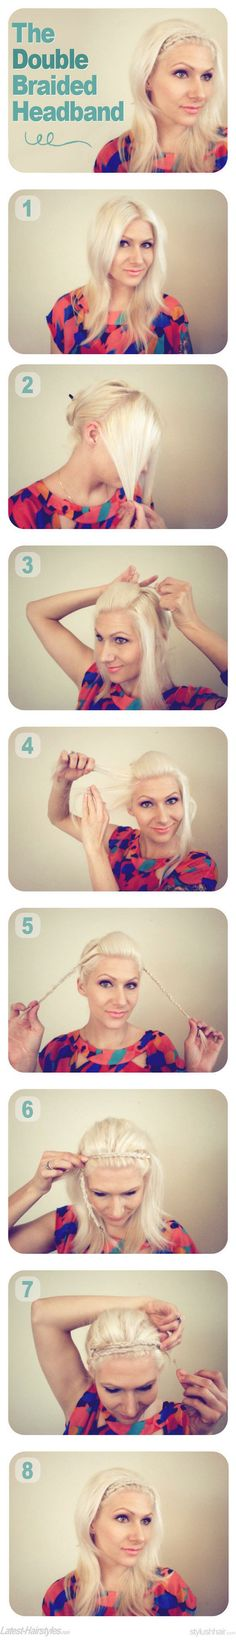 The double braided headband tutorial. I want to try this